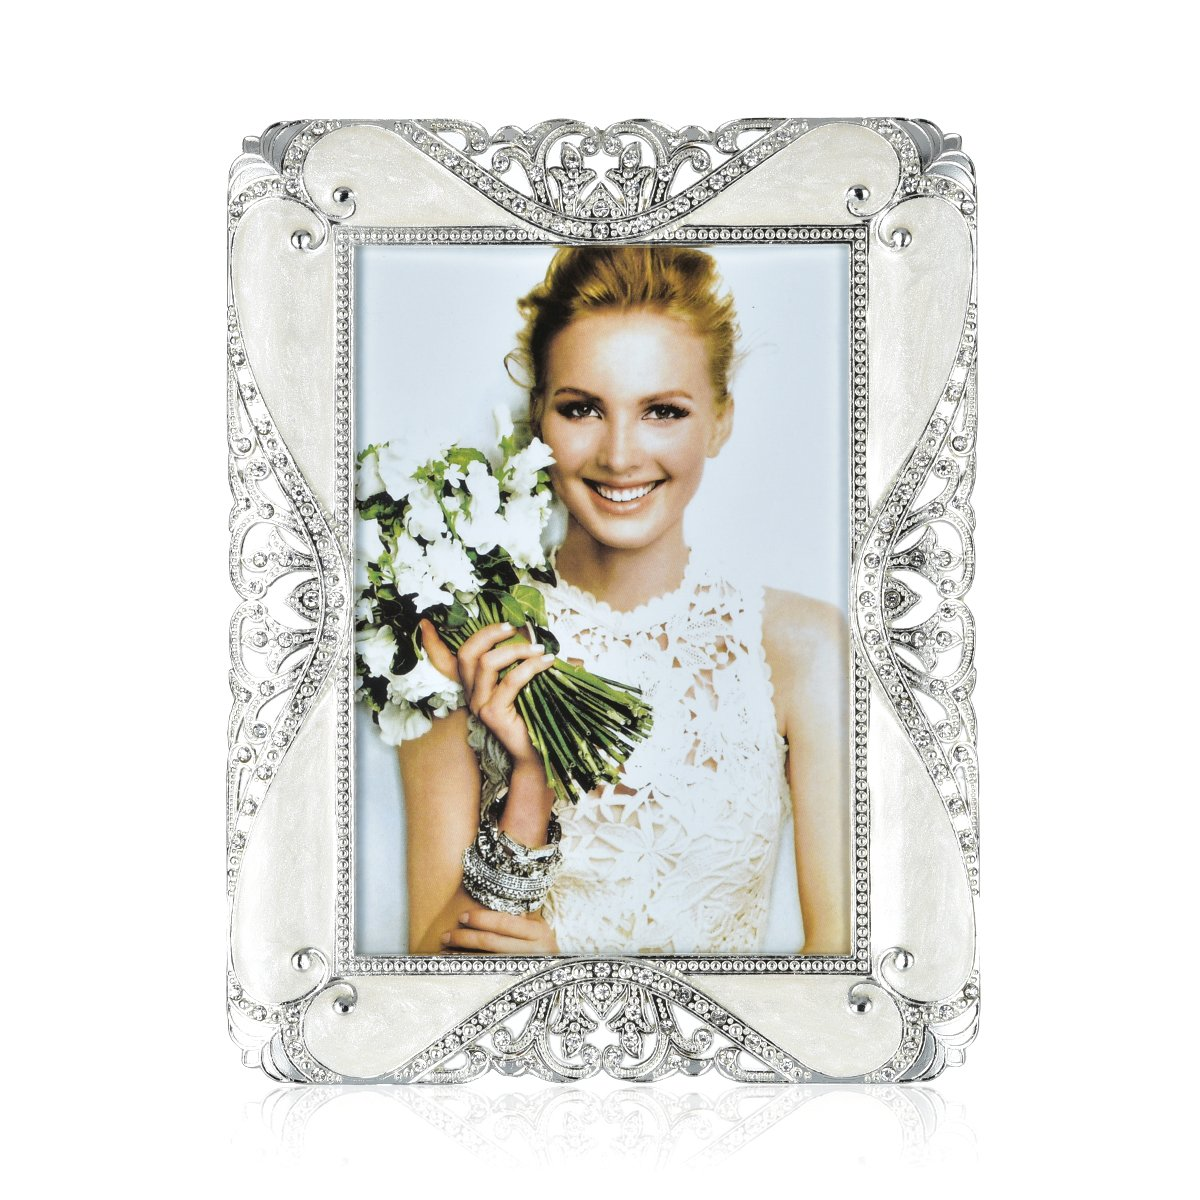 5x7 Picture Frame | College Photo Frame | Wedding Picture Frame Made of EPOXY and Silver Plated Metal | Inlay Rhinestones Photo Frame Blocks Display 5x7 Inch Picture for Family Love Baby